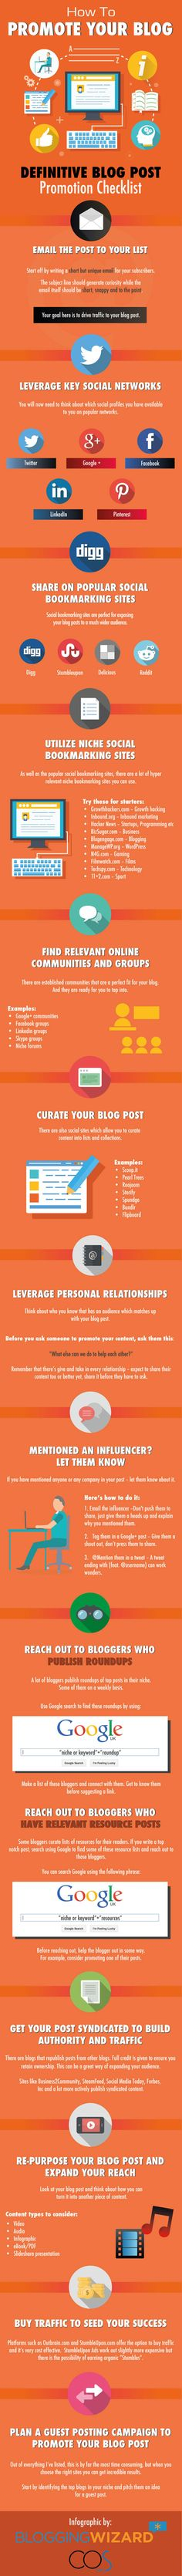 blog post promotion infographic small